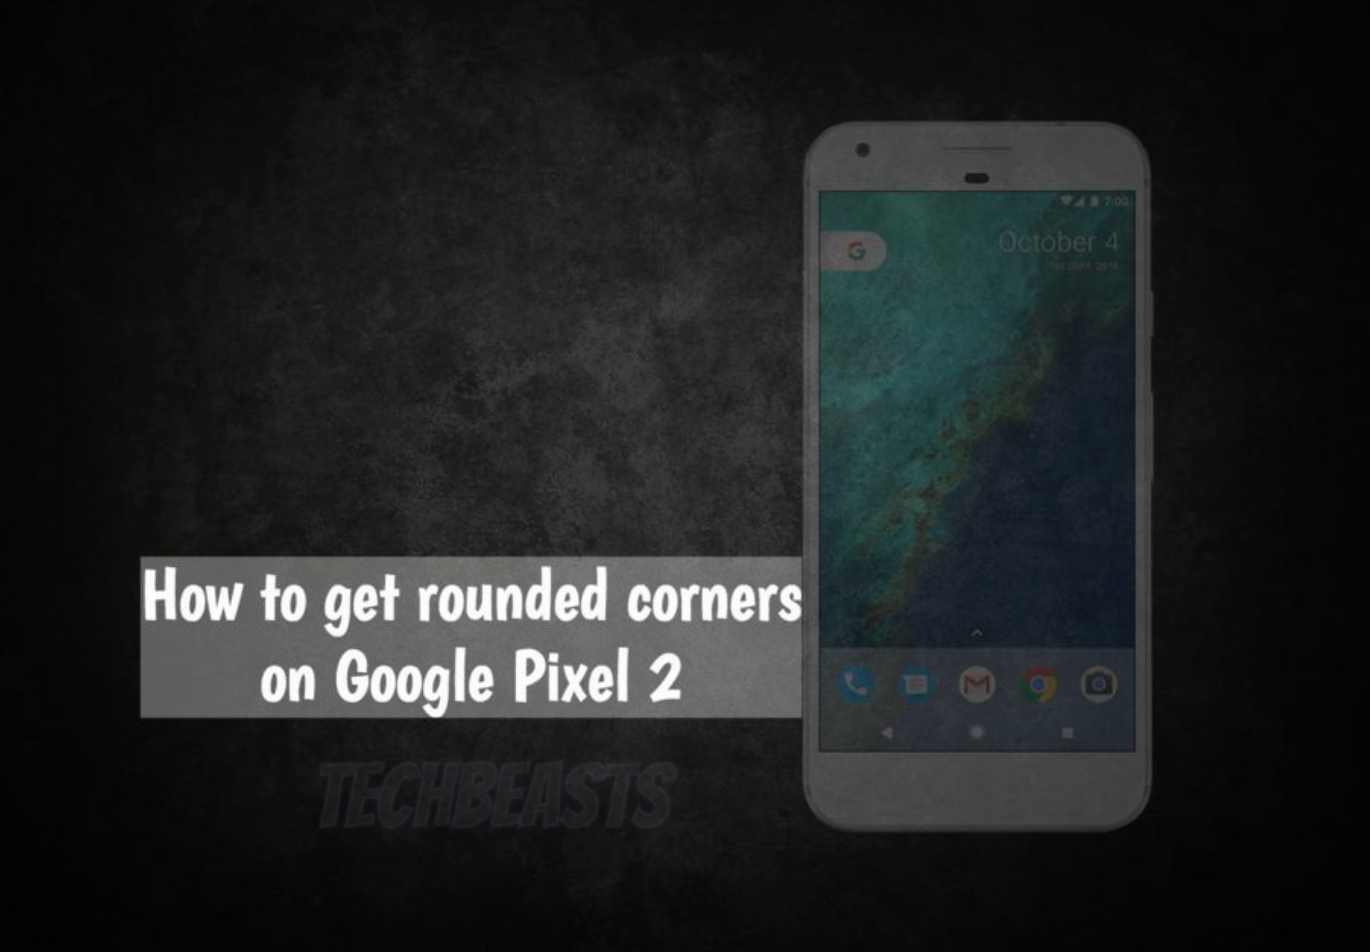 How To Get Rounded Corners On Google Pixel 2